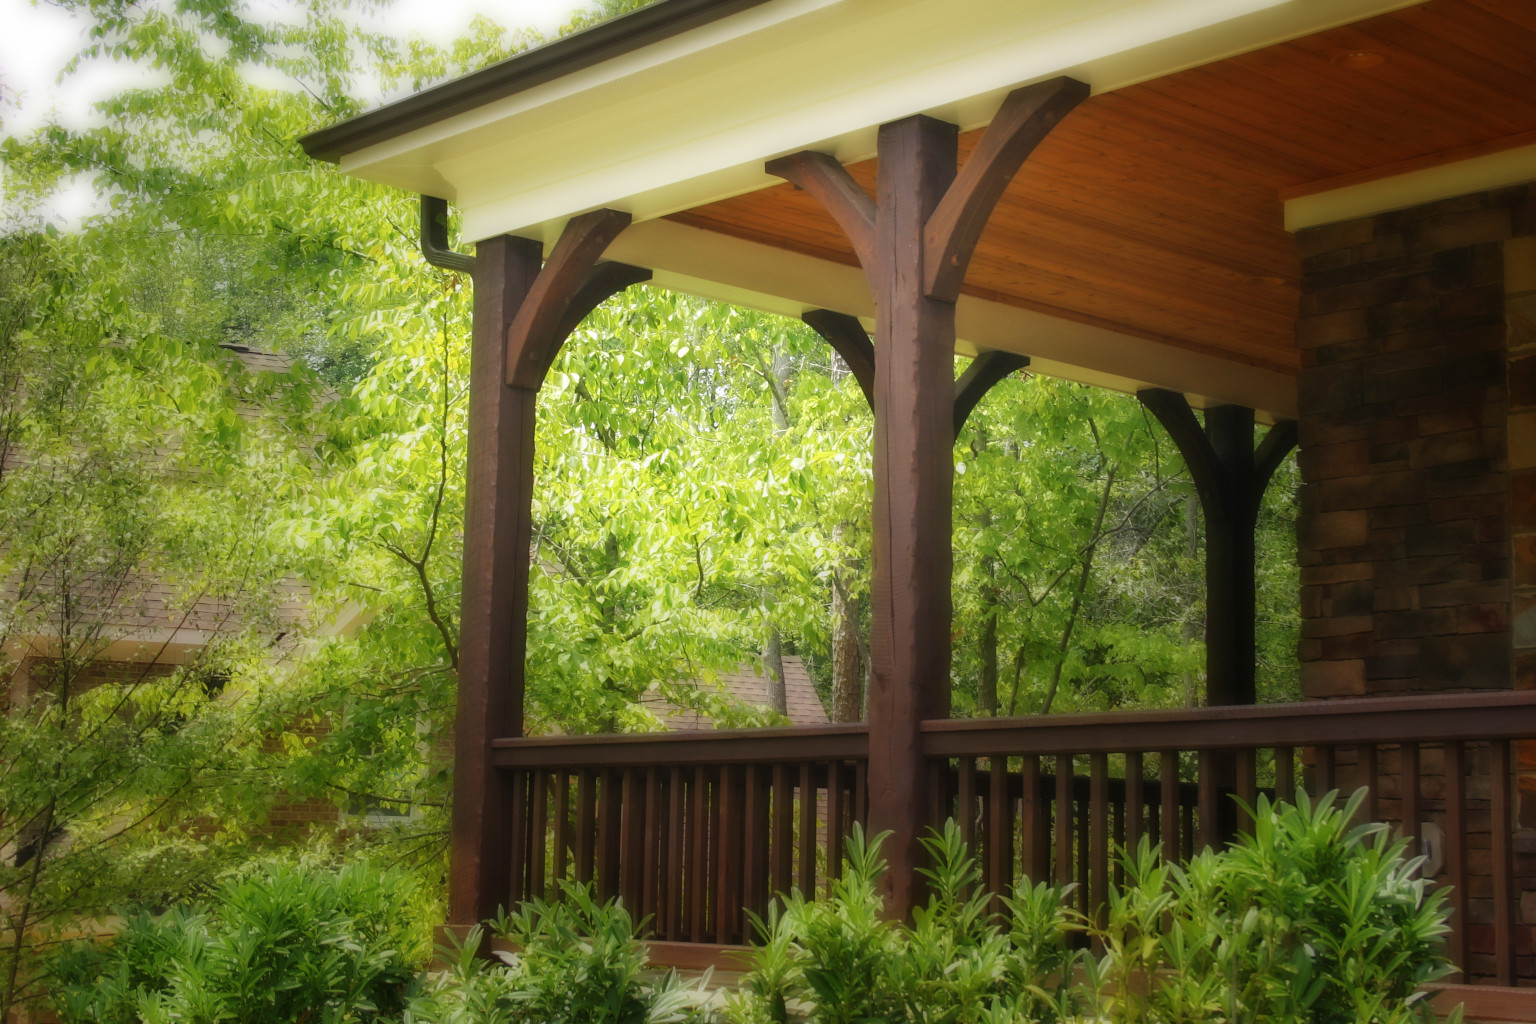 The wood braces, wood posts and wood railing on this porch coordinate nicely for a finished look.